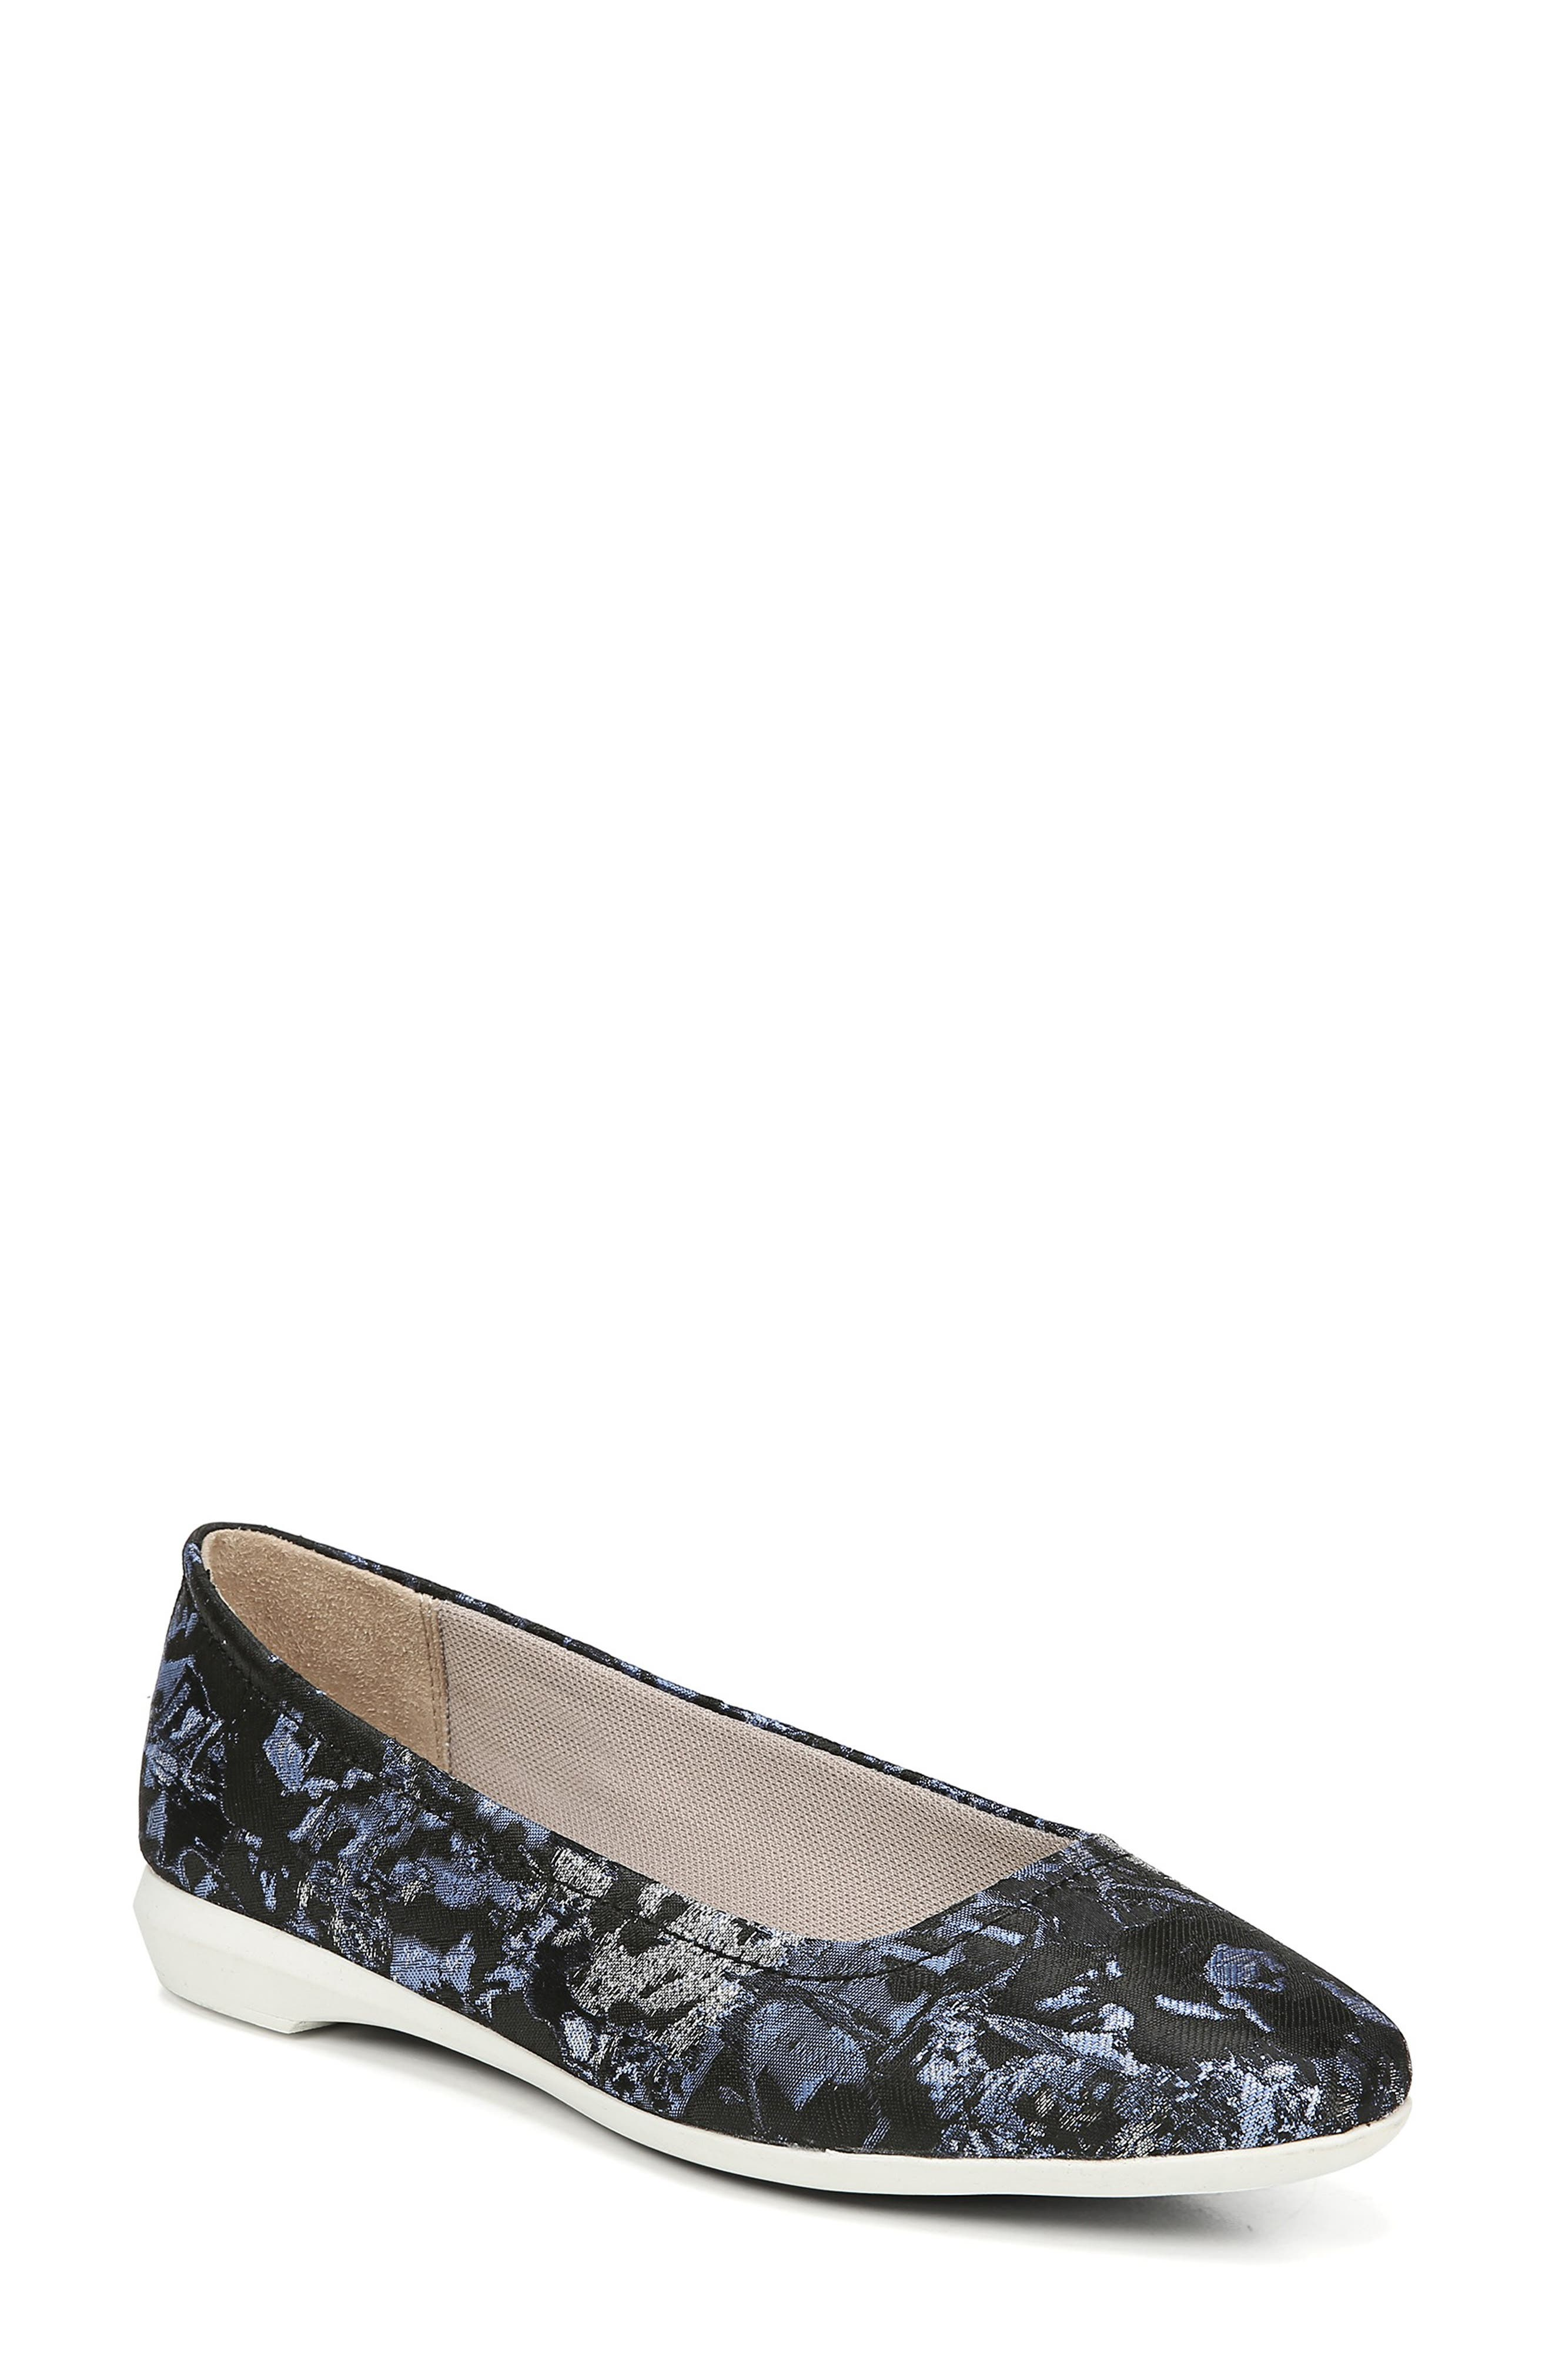 Naturalizer Alya Flat, Blue